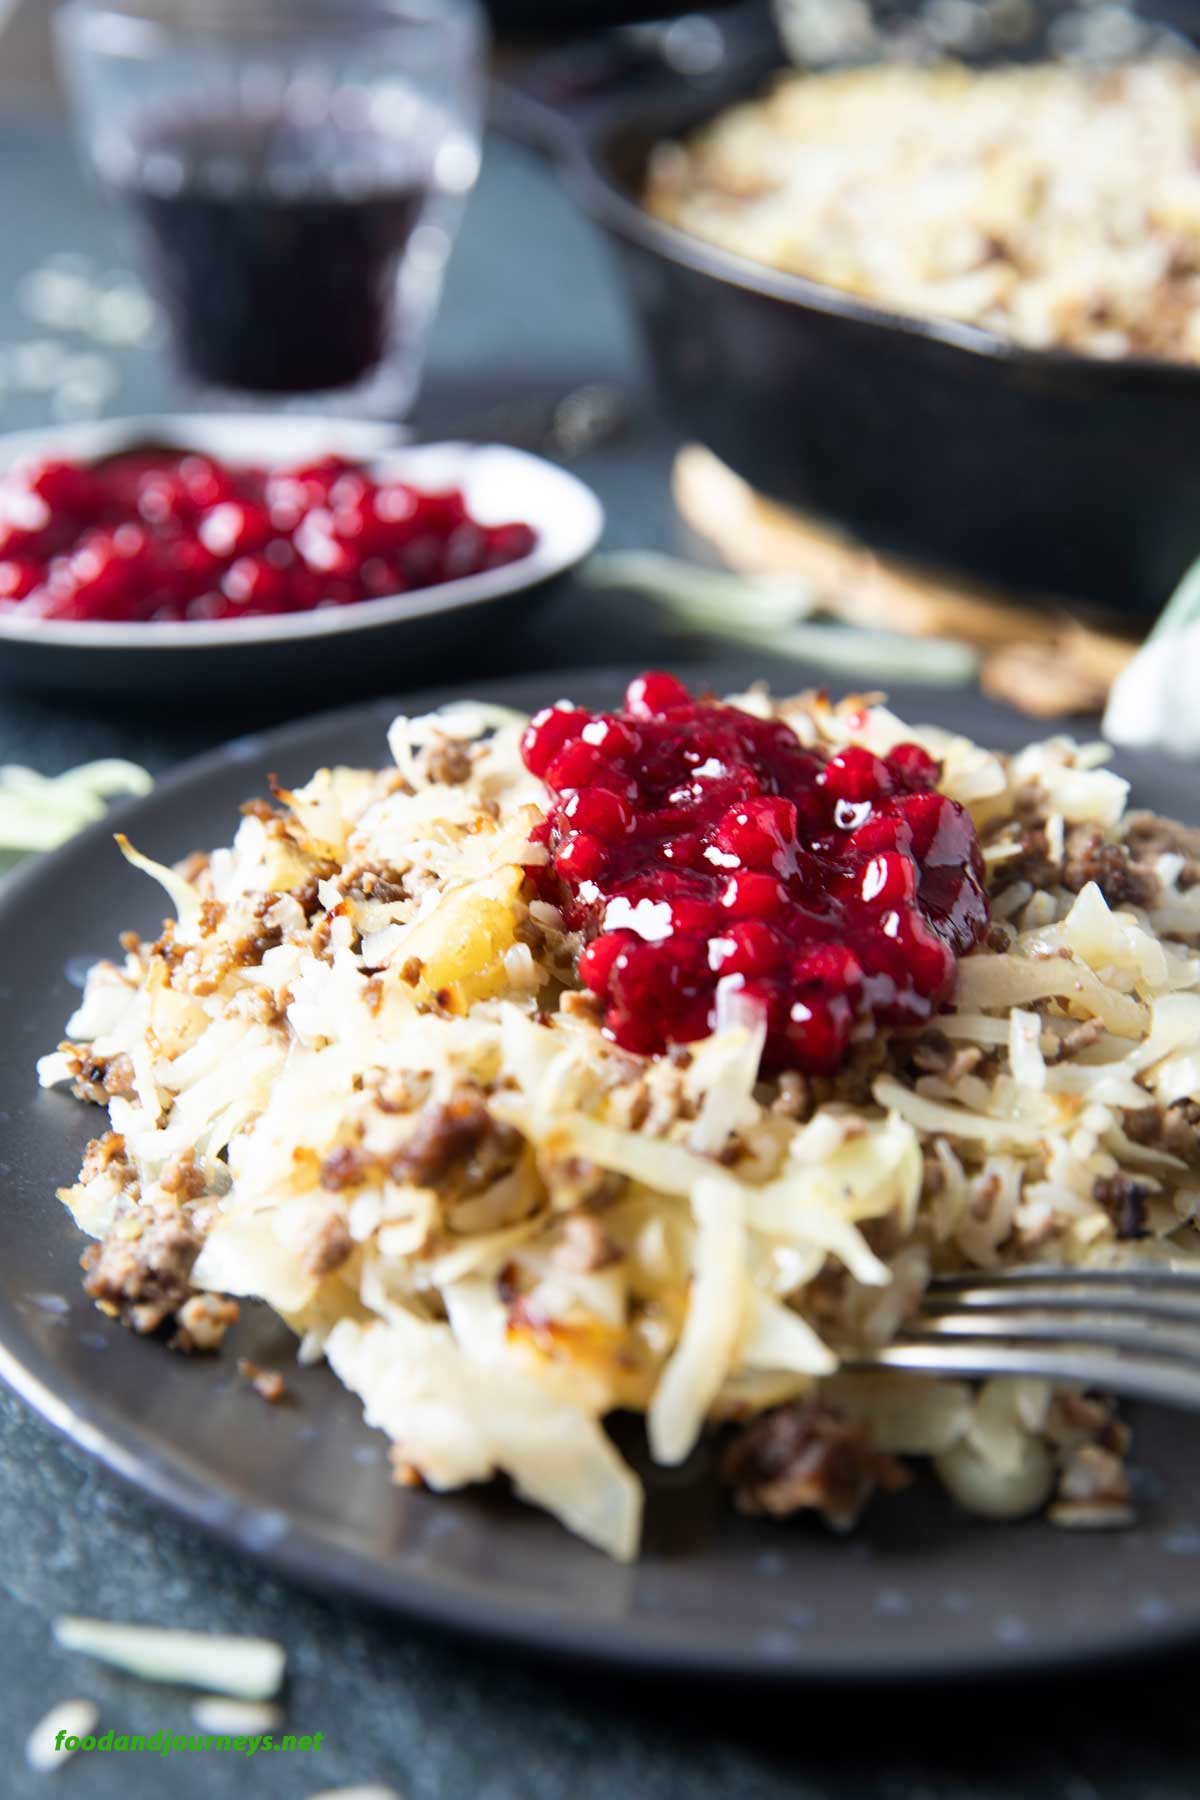 A serving of Finnish Ground Beef & Cabbage Casserole, with some lingonberry jam on top, and more on the side.